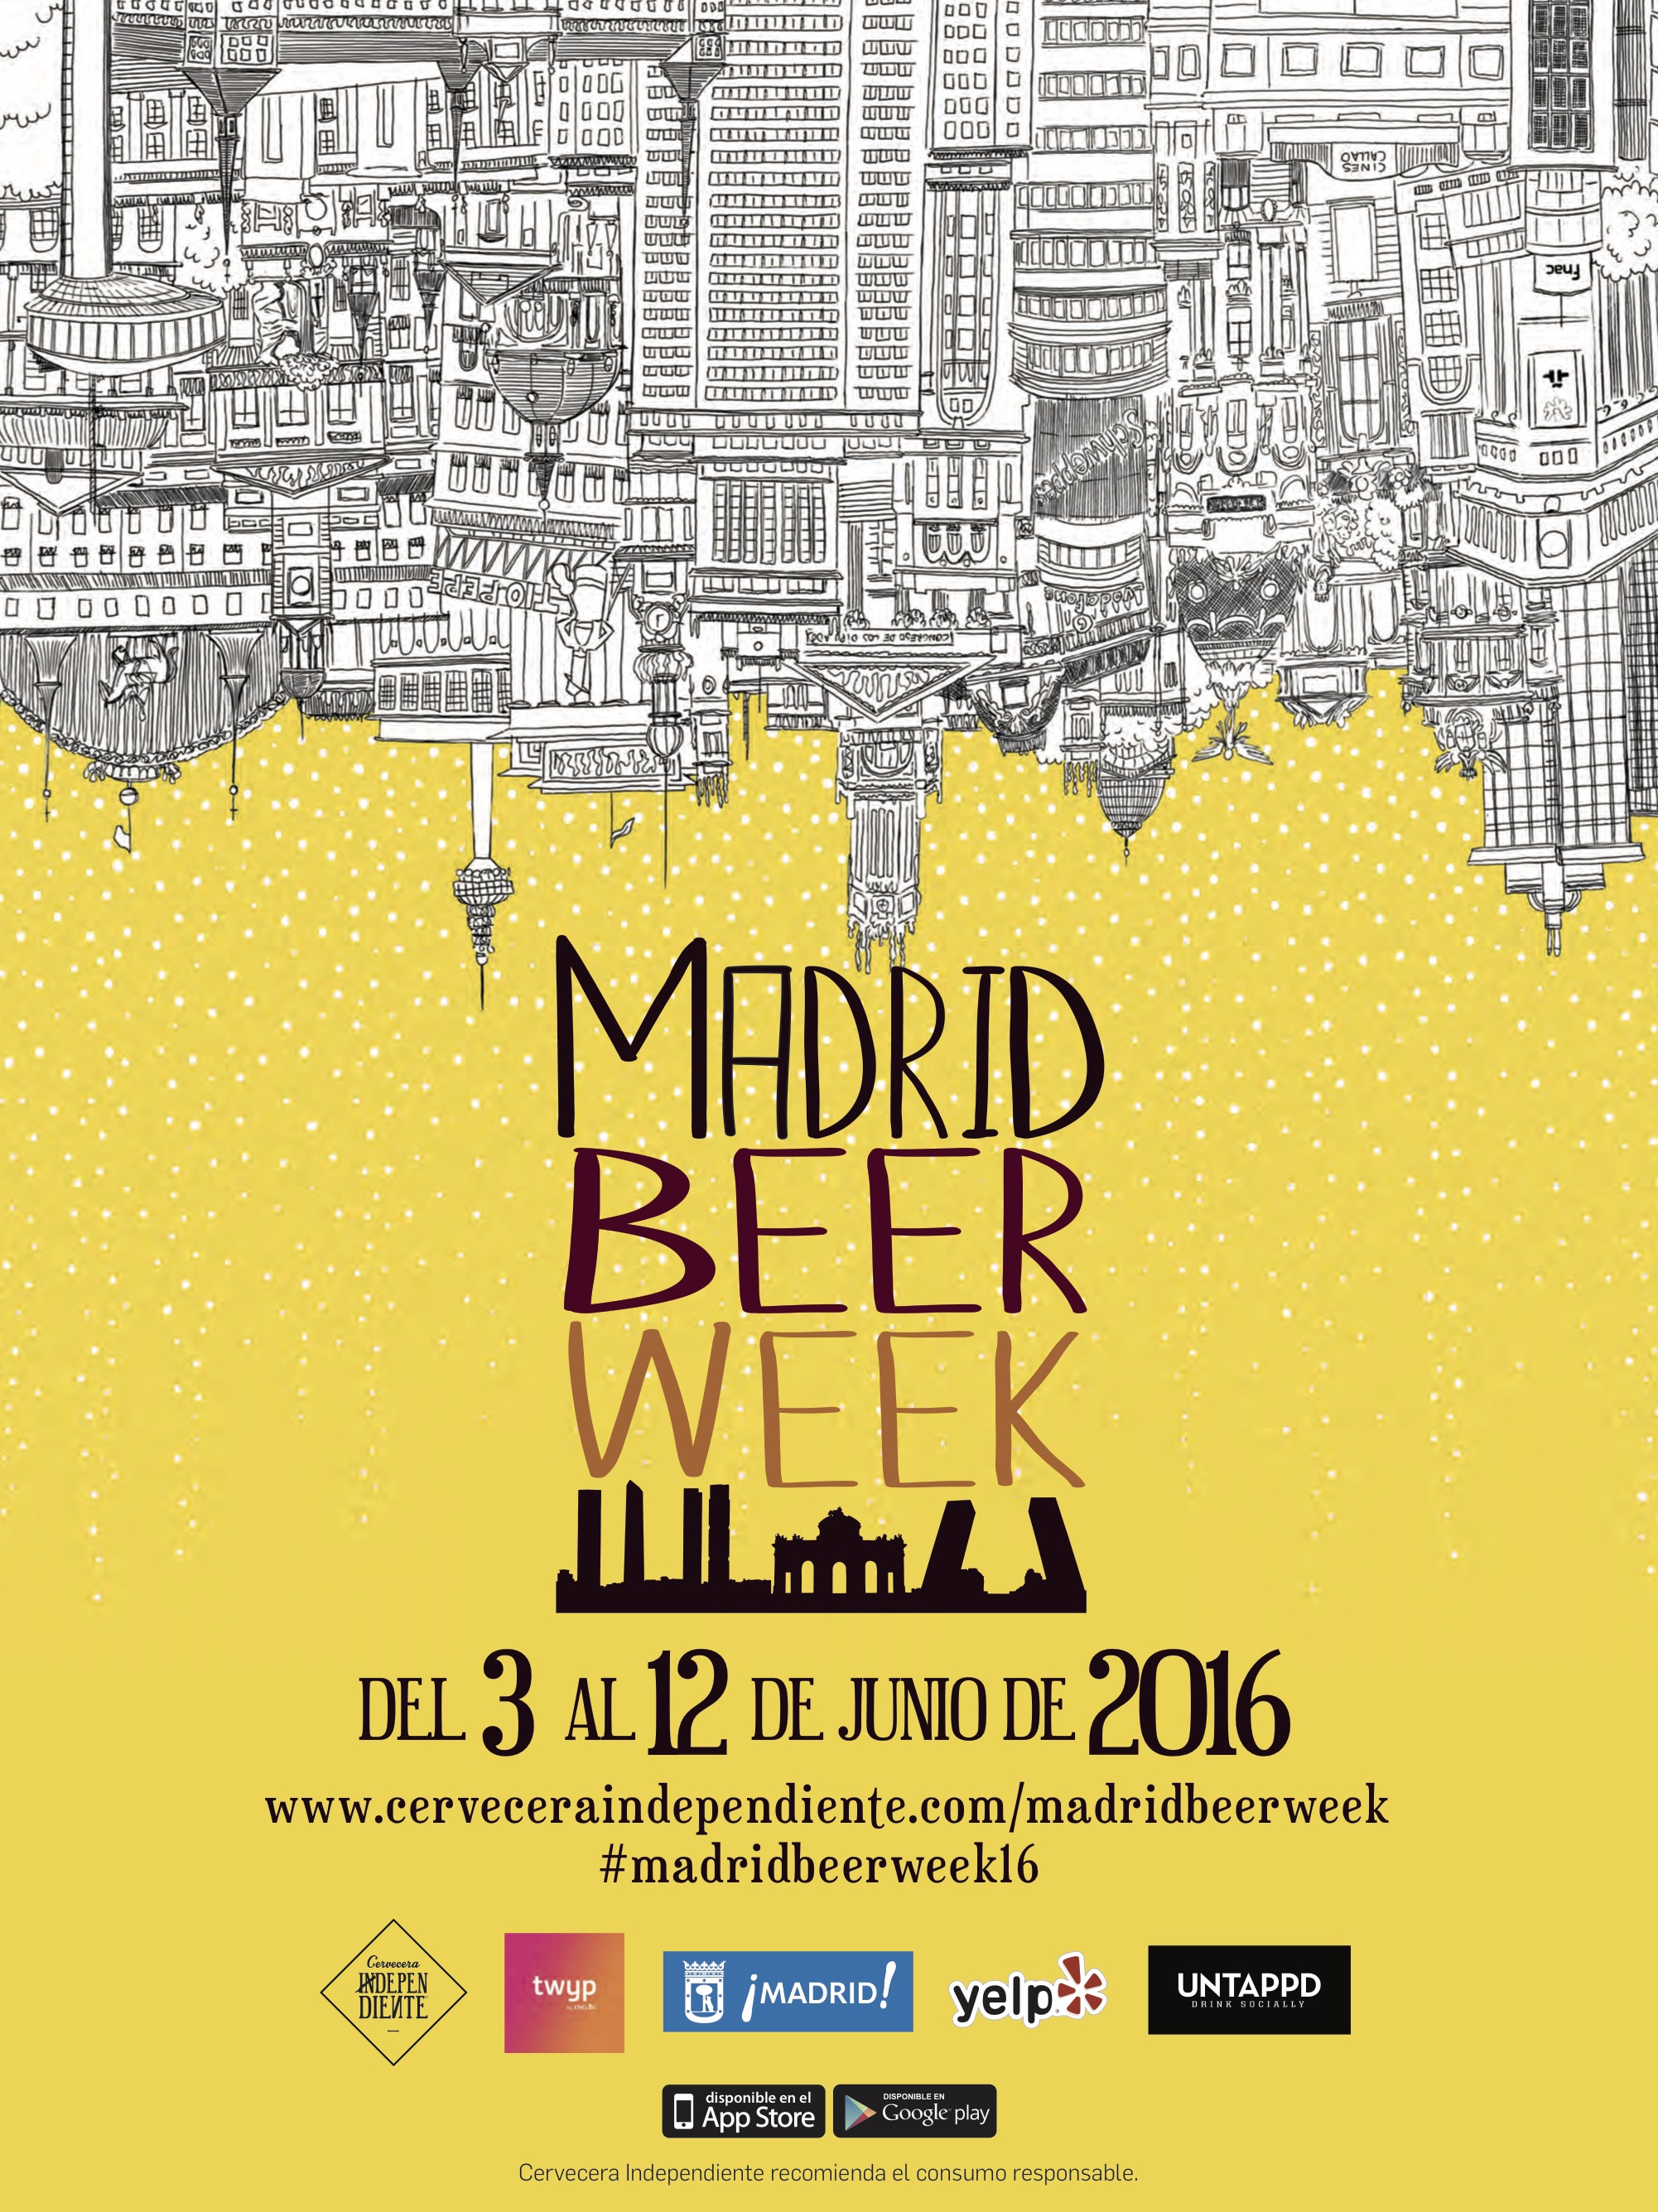 Madrid Beer Week 2016